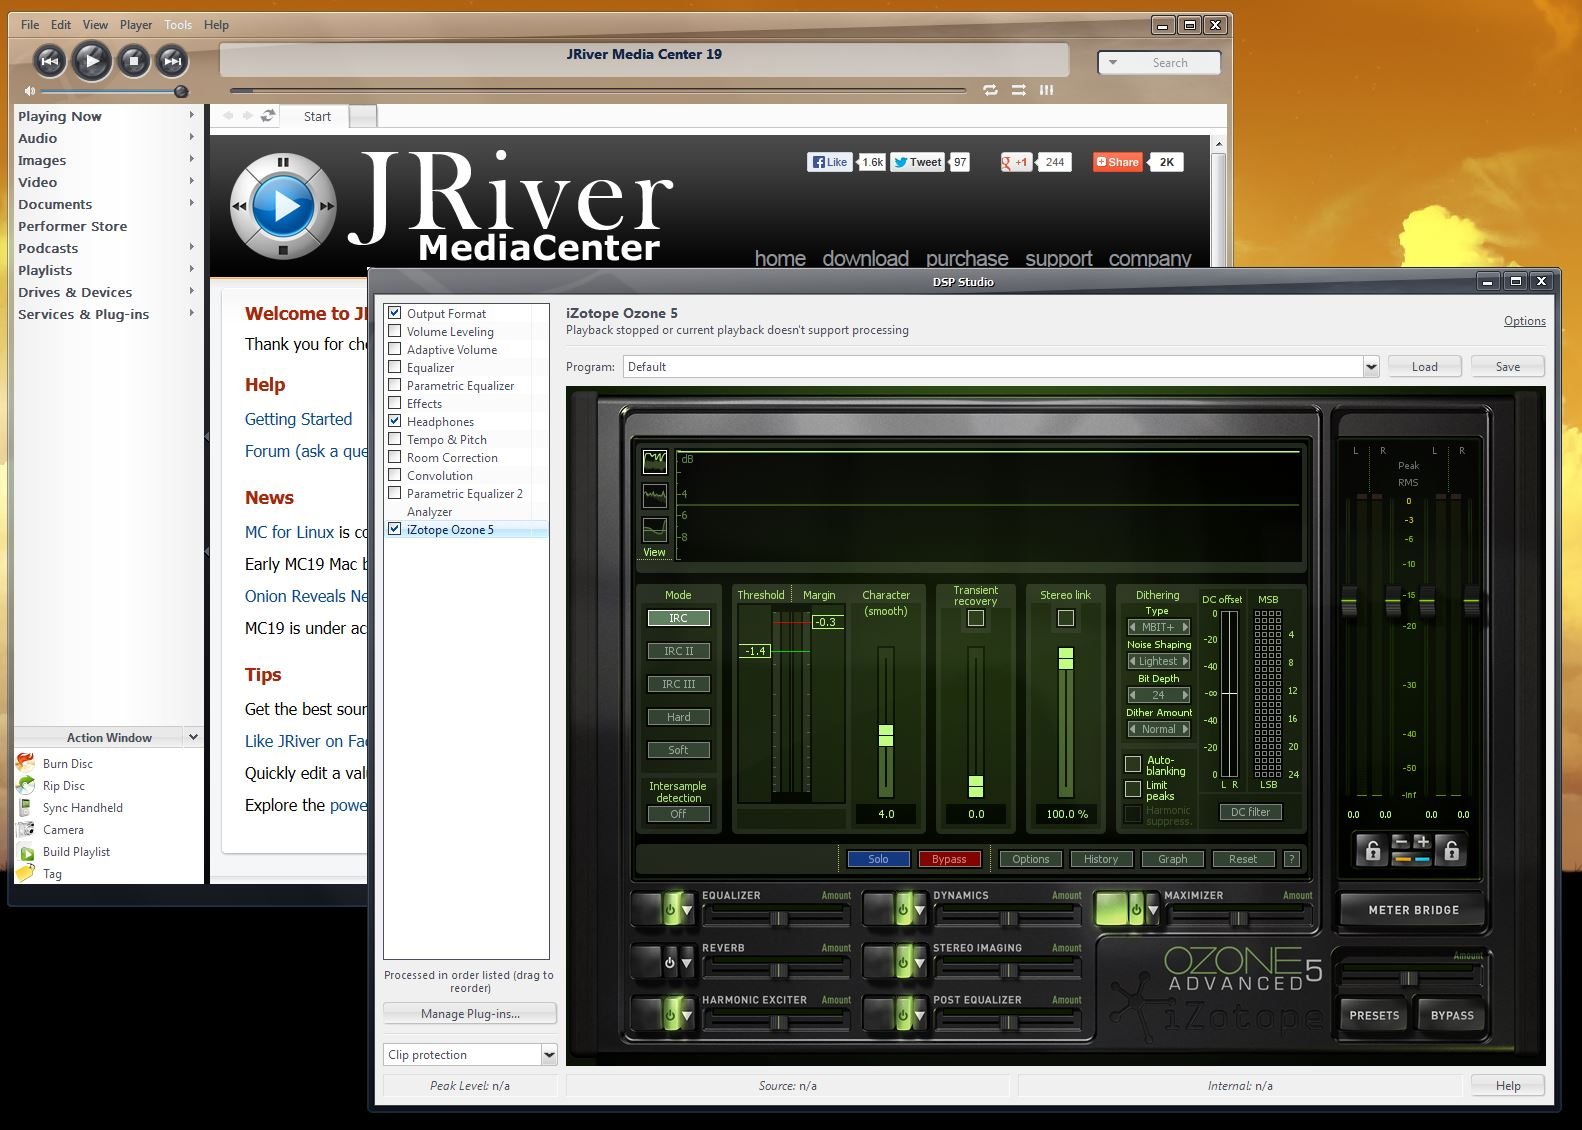 JRiver Media Center Plugins    | Headphone Reviews and Discussion